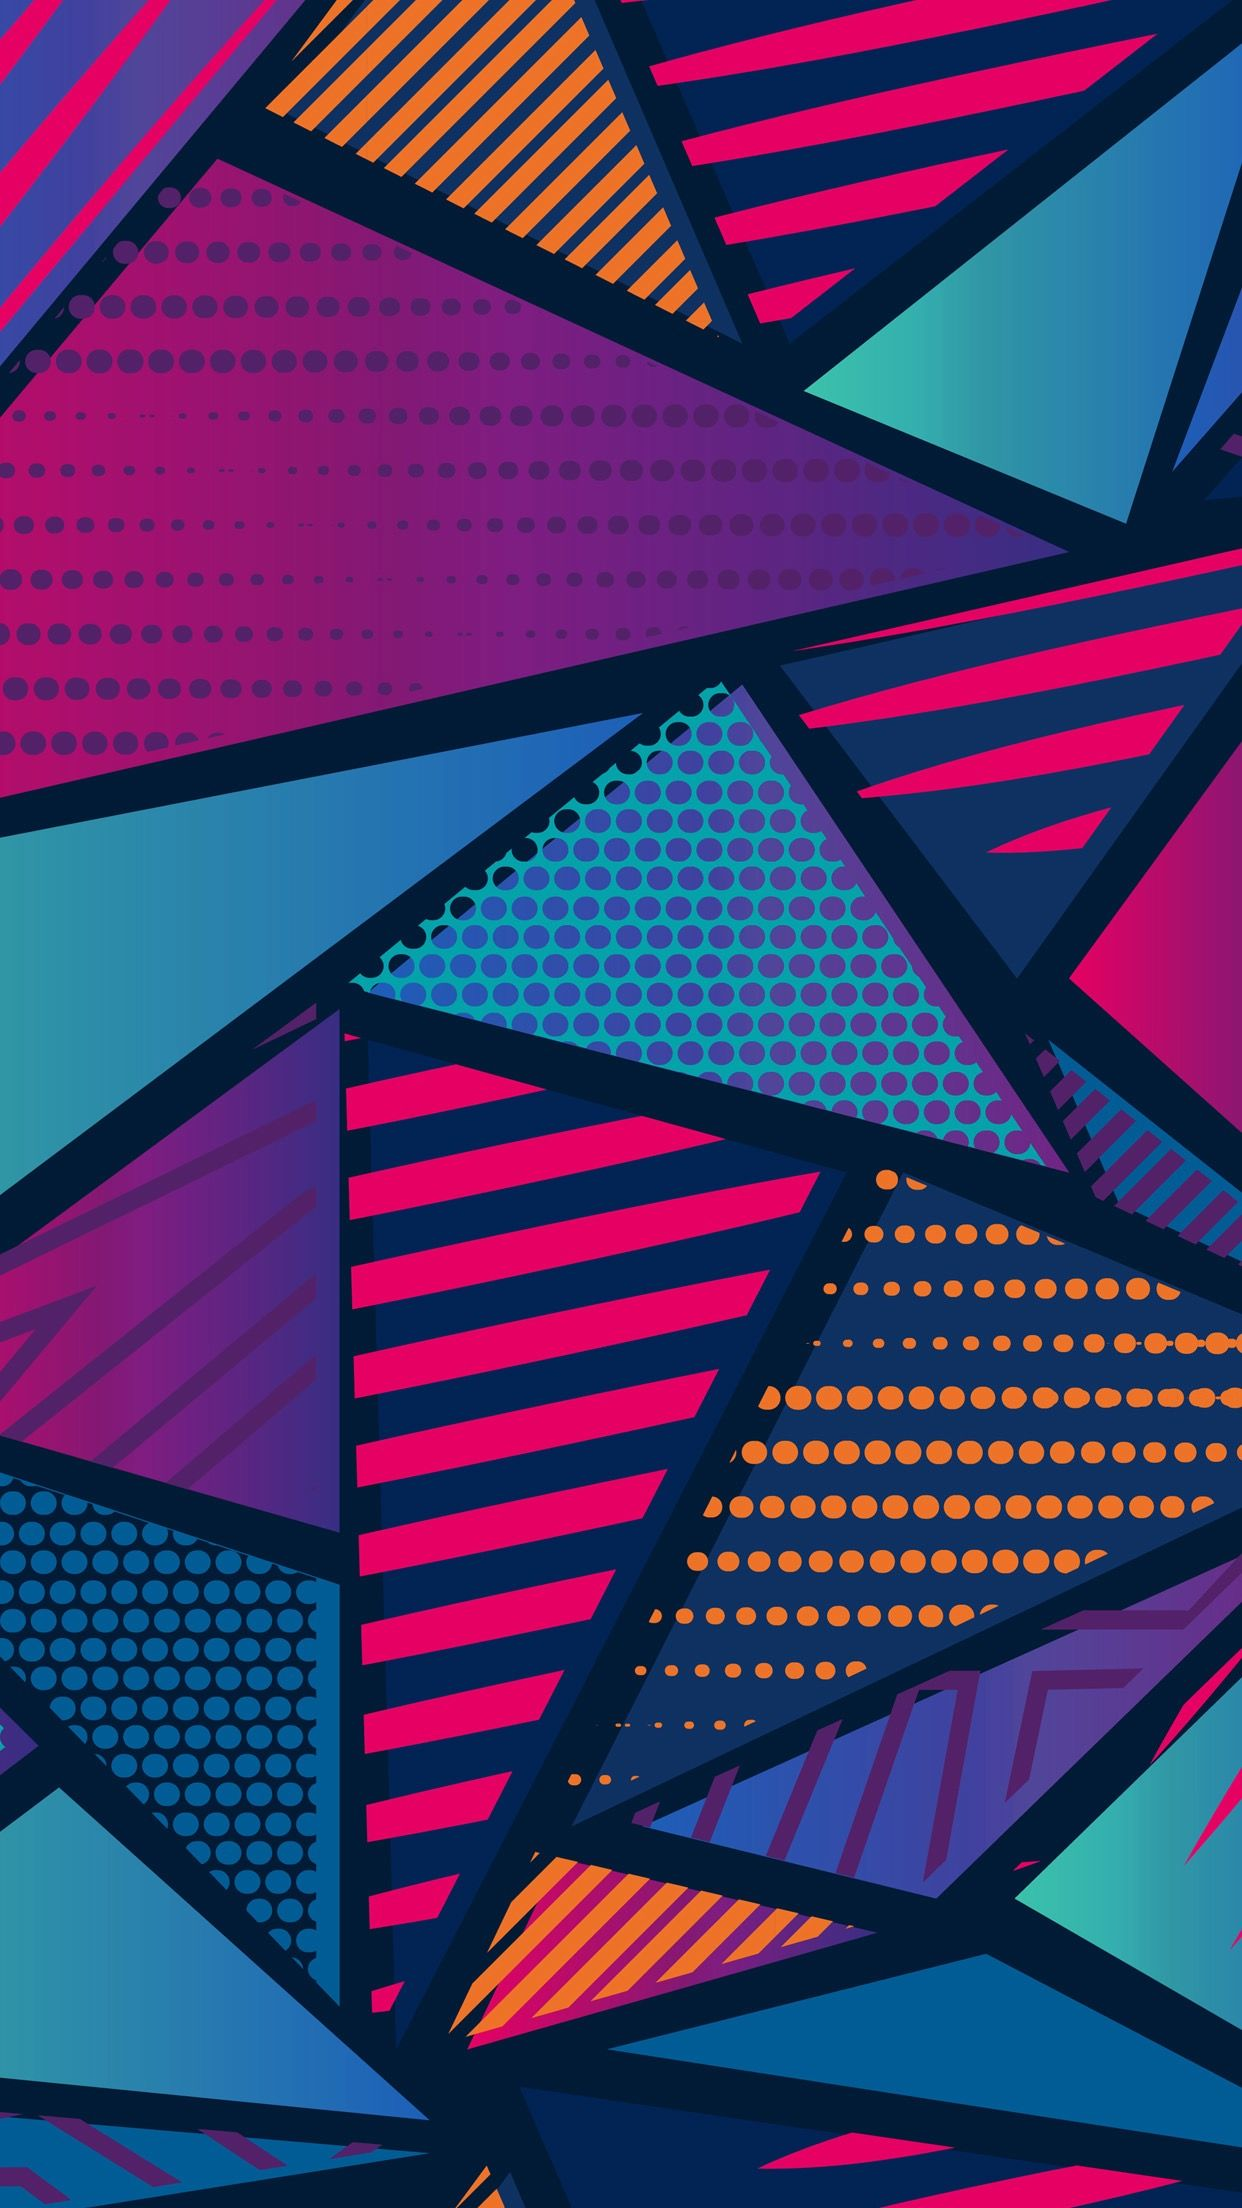 Free Colorful Geometric Wallpaper: Cellphone Background / Wallpaper